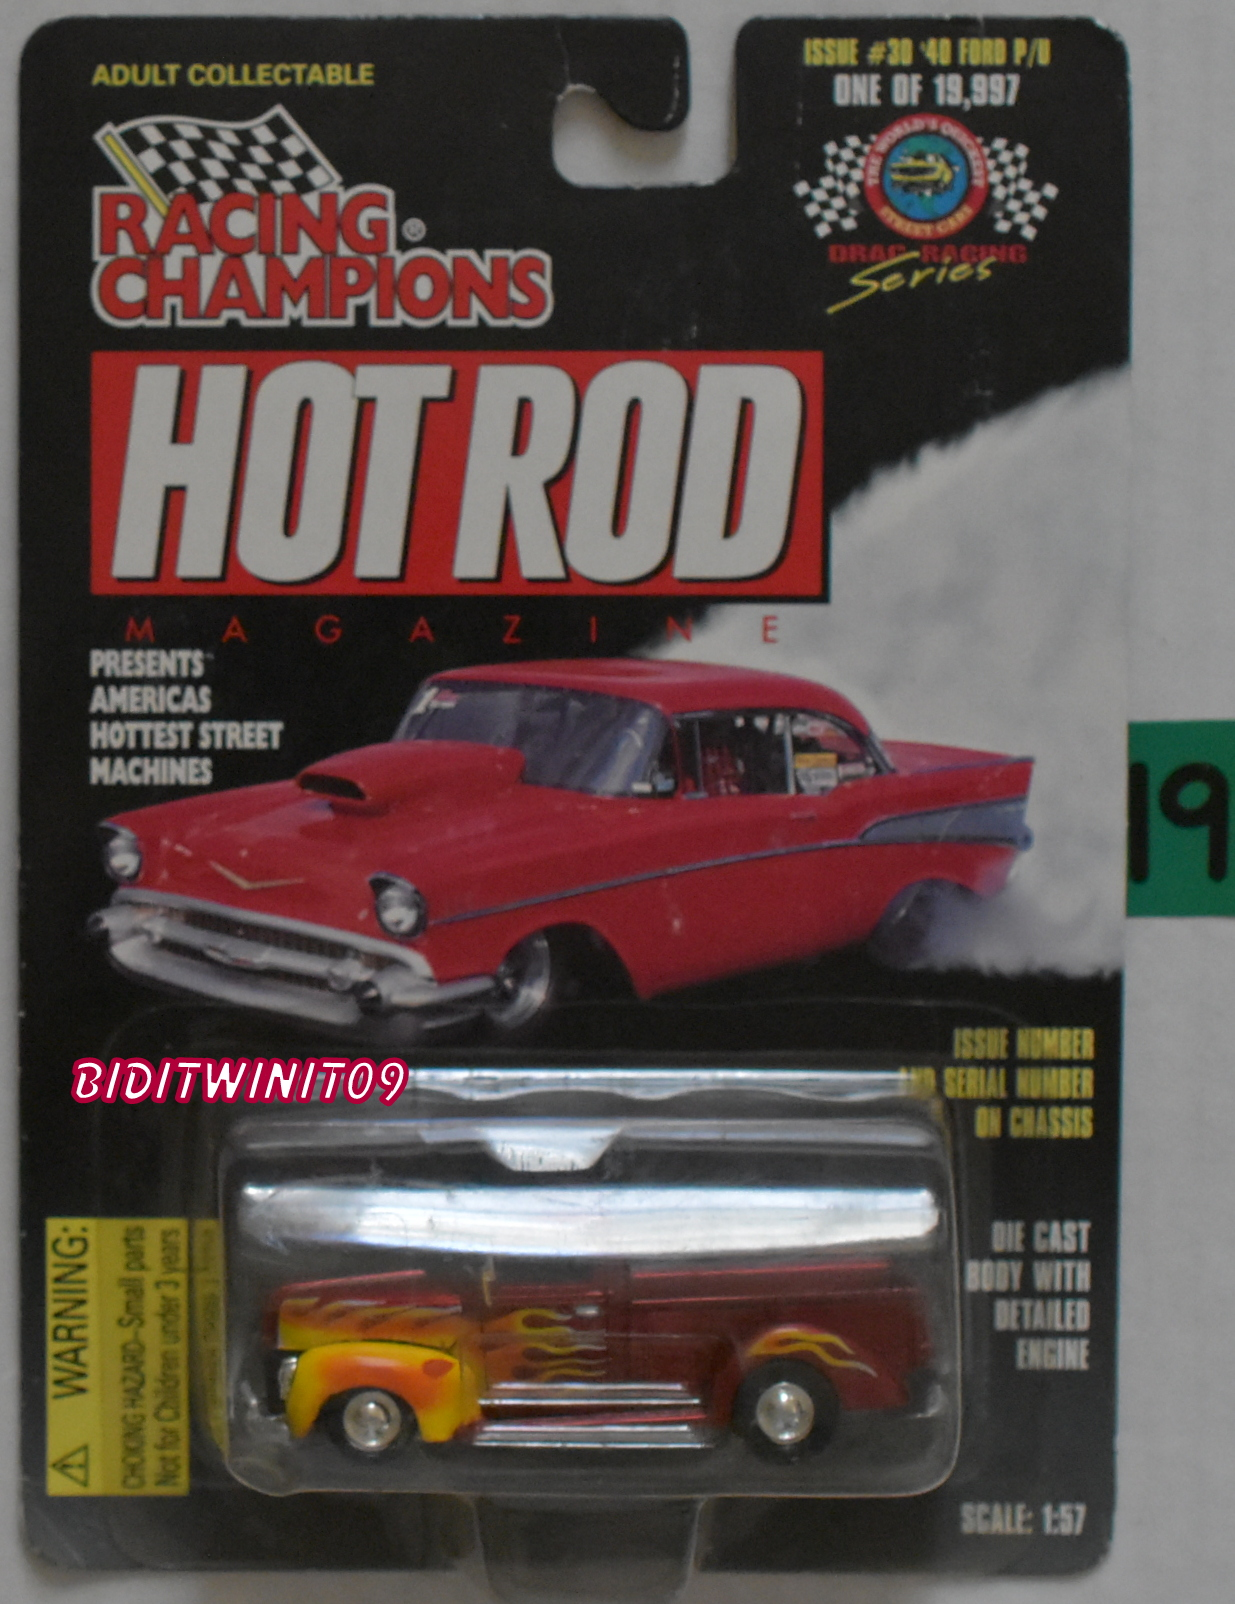 RACING CHAMPIONS HOT ROD MAGAZINE ISSUE #30 '40 FORD P/D SCALE 1:57 RED E+